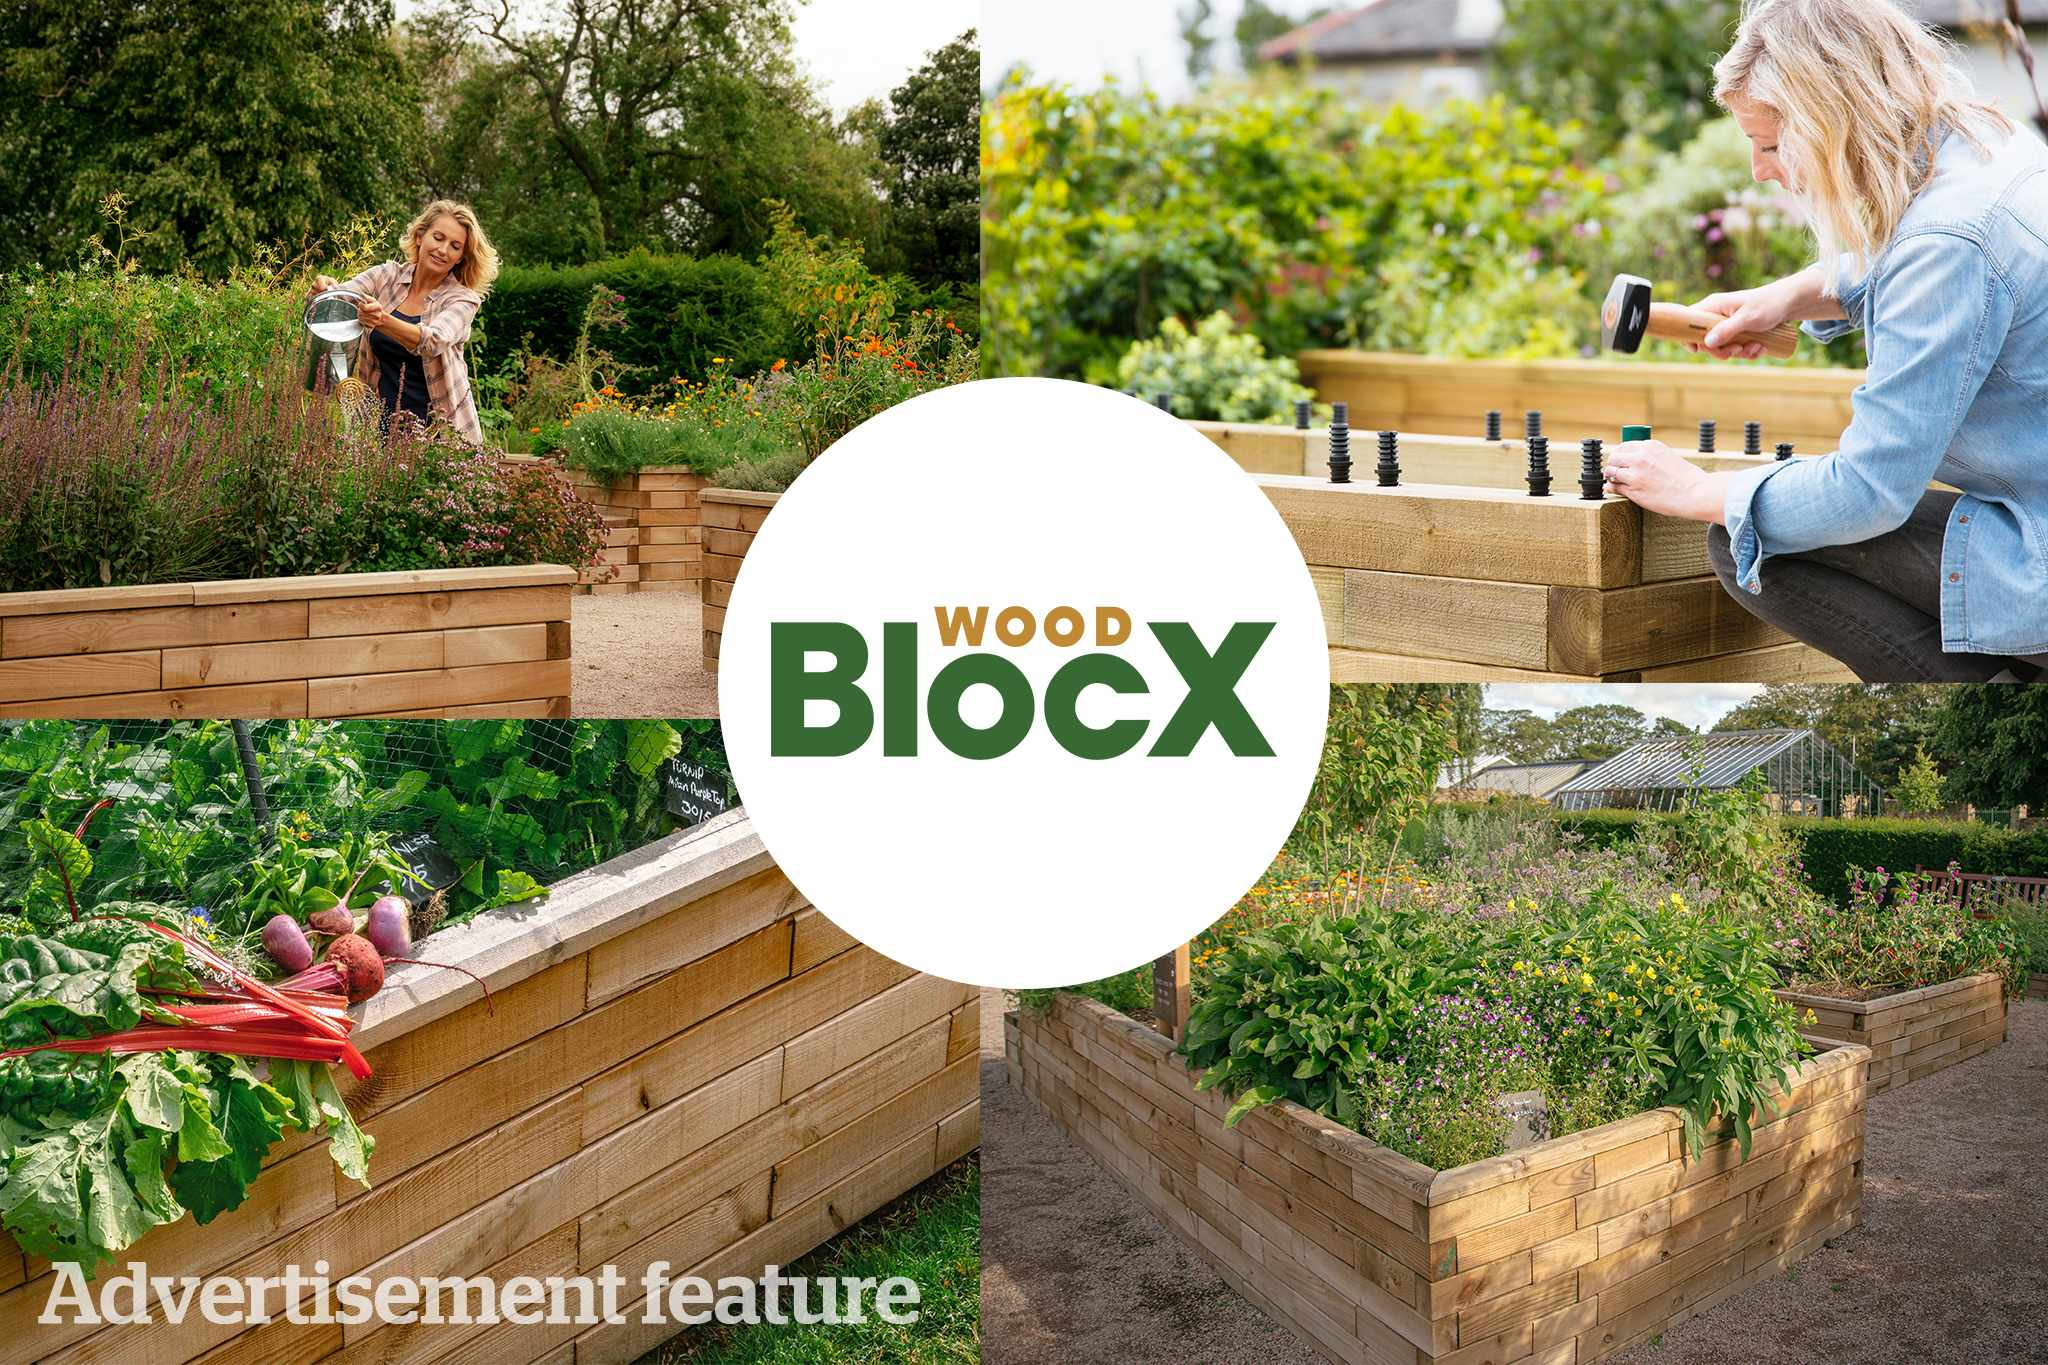 Win a £500 voucher to spend at WoodBlocX